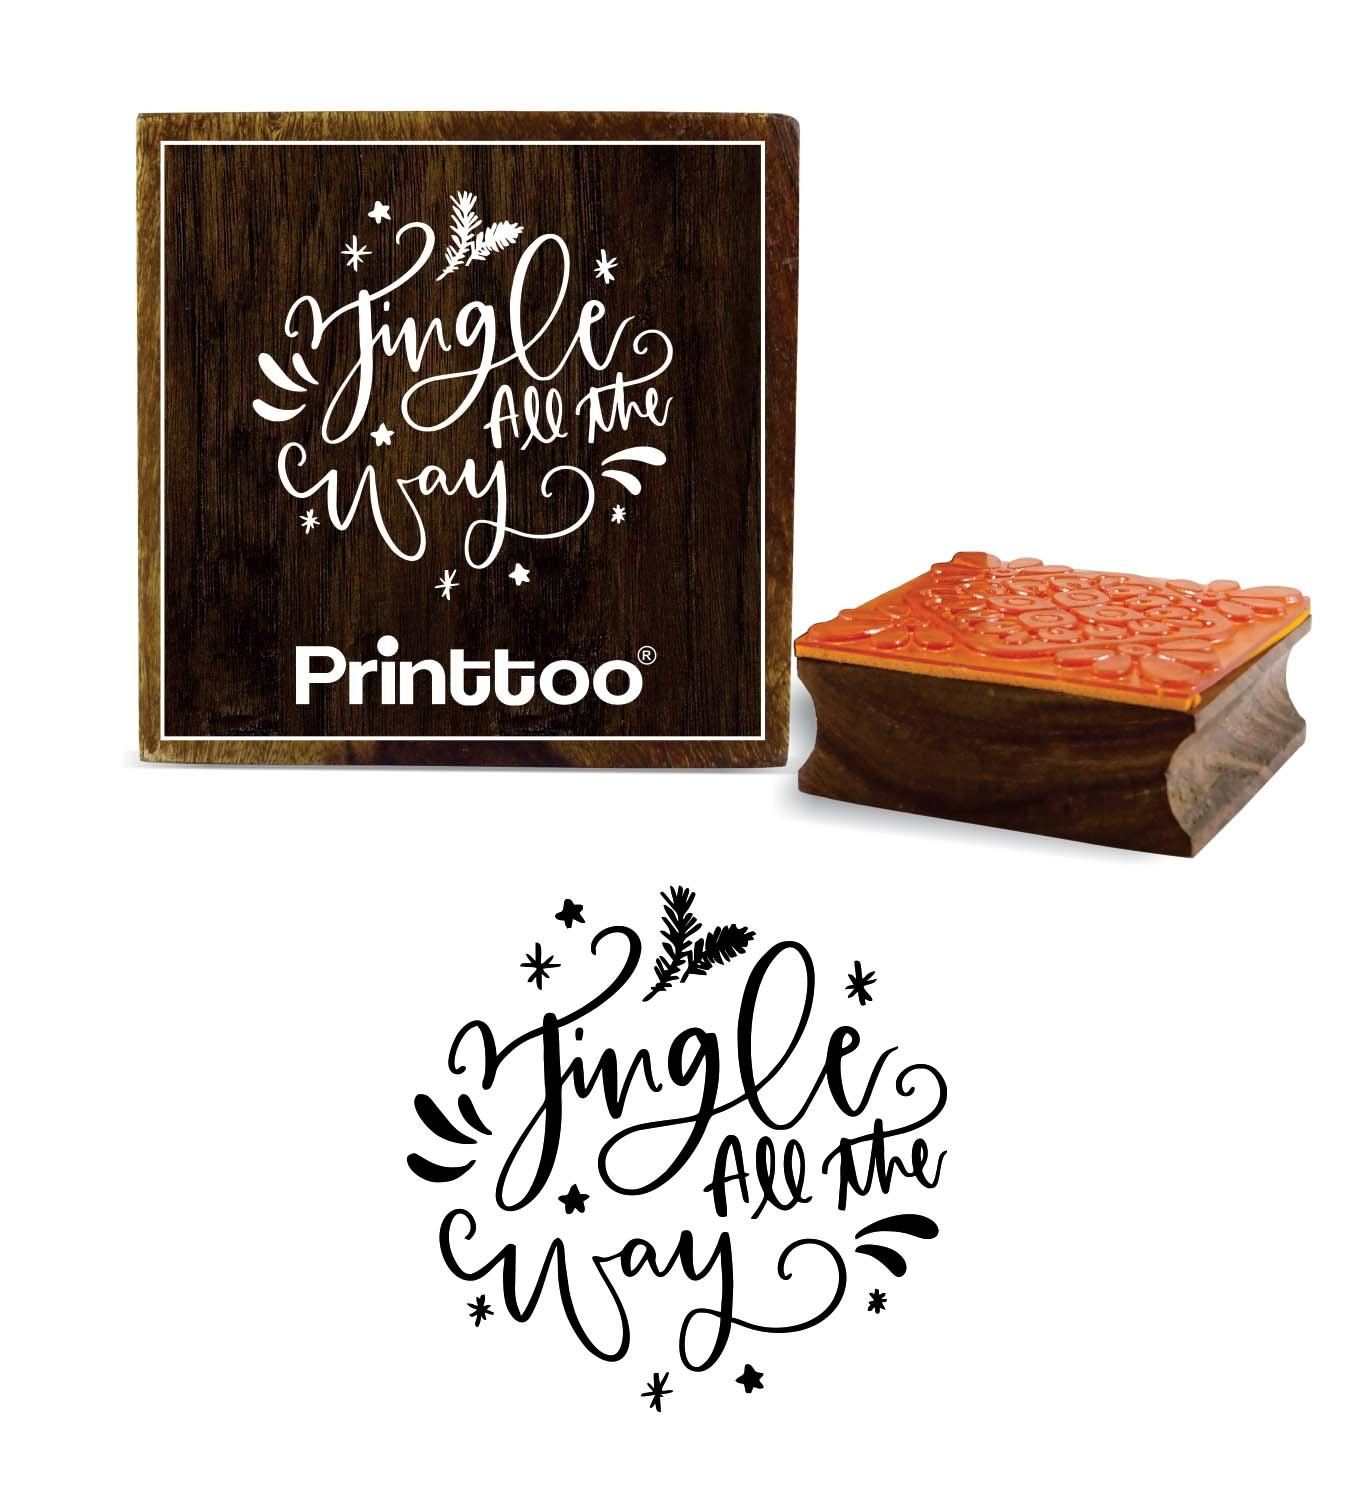 Printtoo Jingle All The Way Word - Agenda cuadrada de madera ...